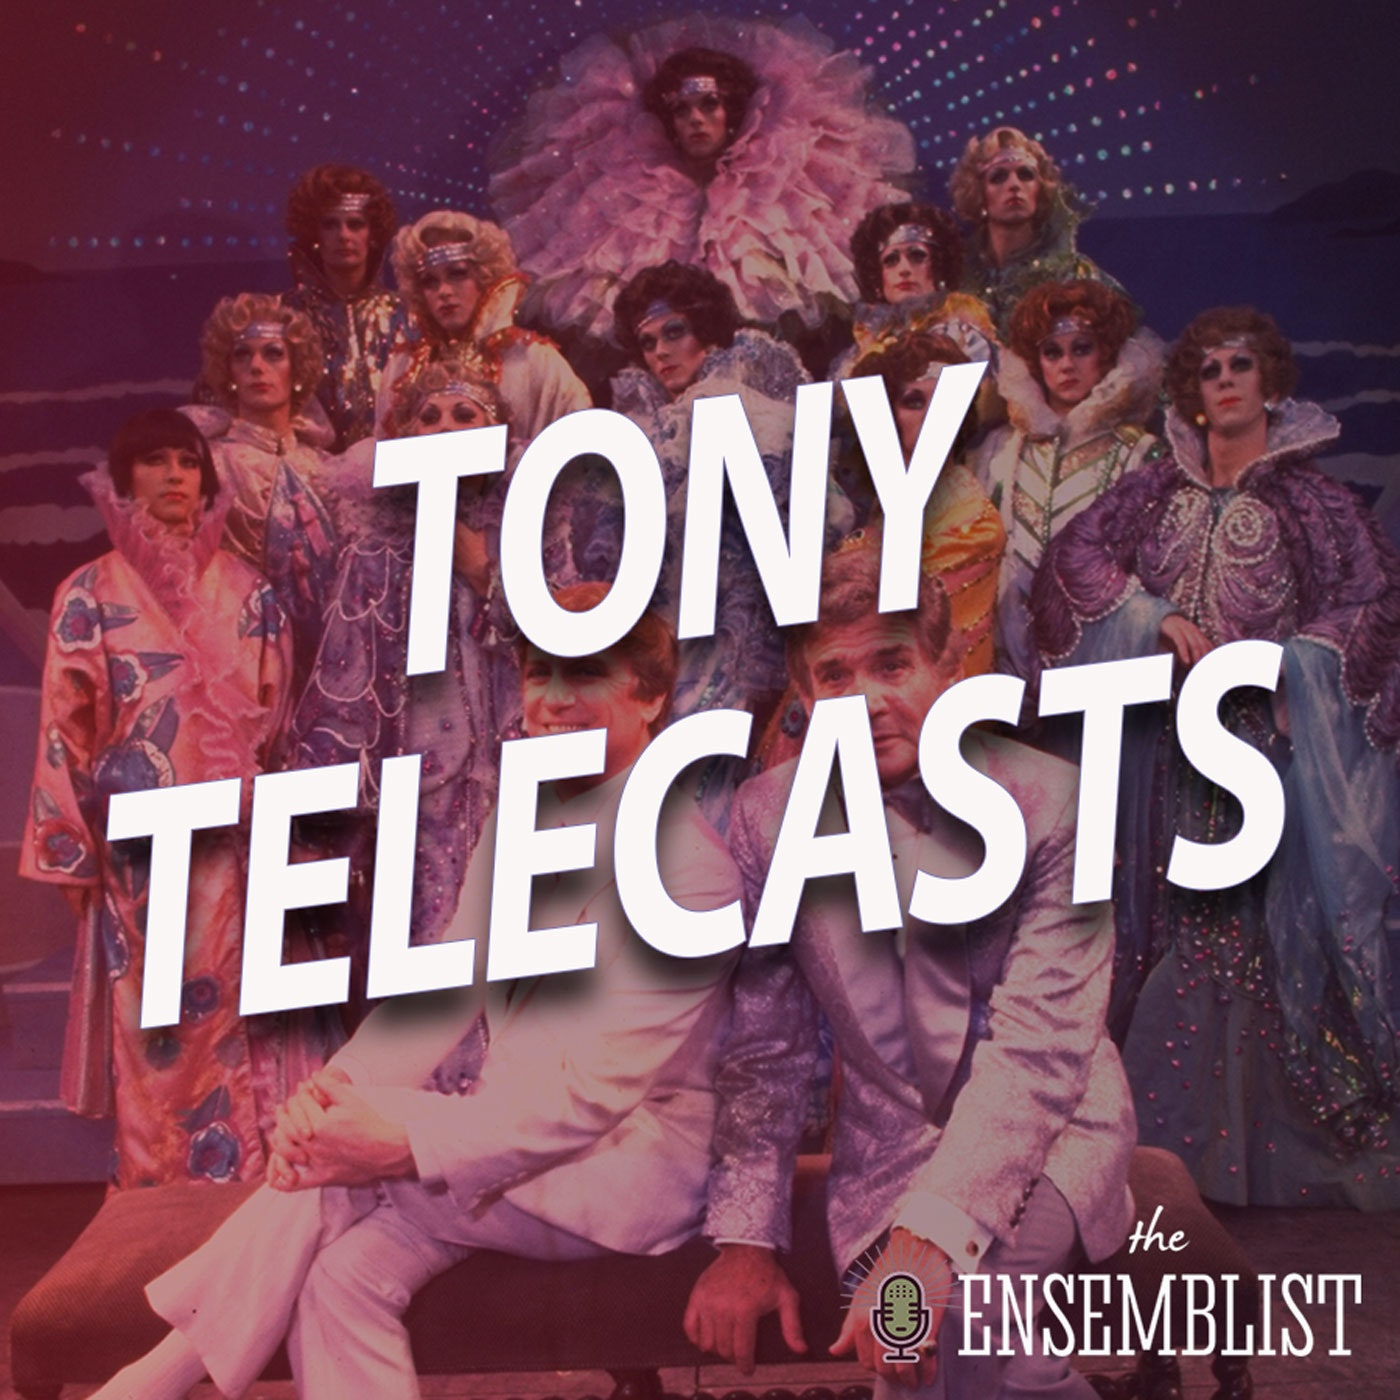 #480 - Tony Telecasts (1984 - Baby, La Cage aux Folles, Sunday in the Park with George, The Tap Dance Kid) Part 2